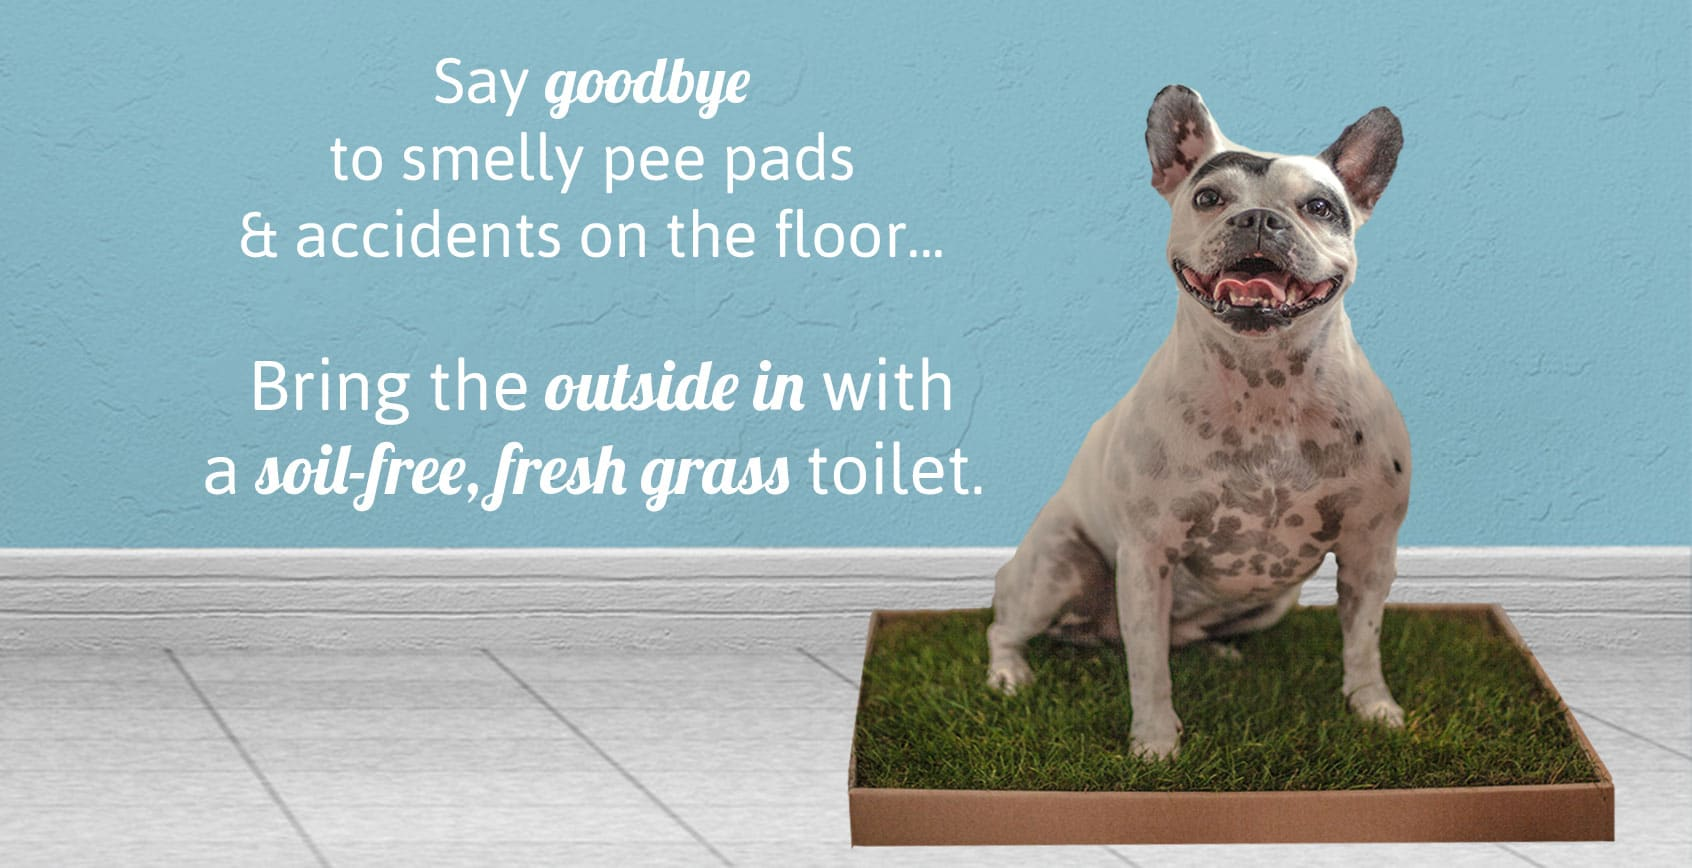 A natural alternative to pee pads.